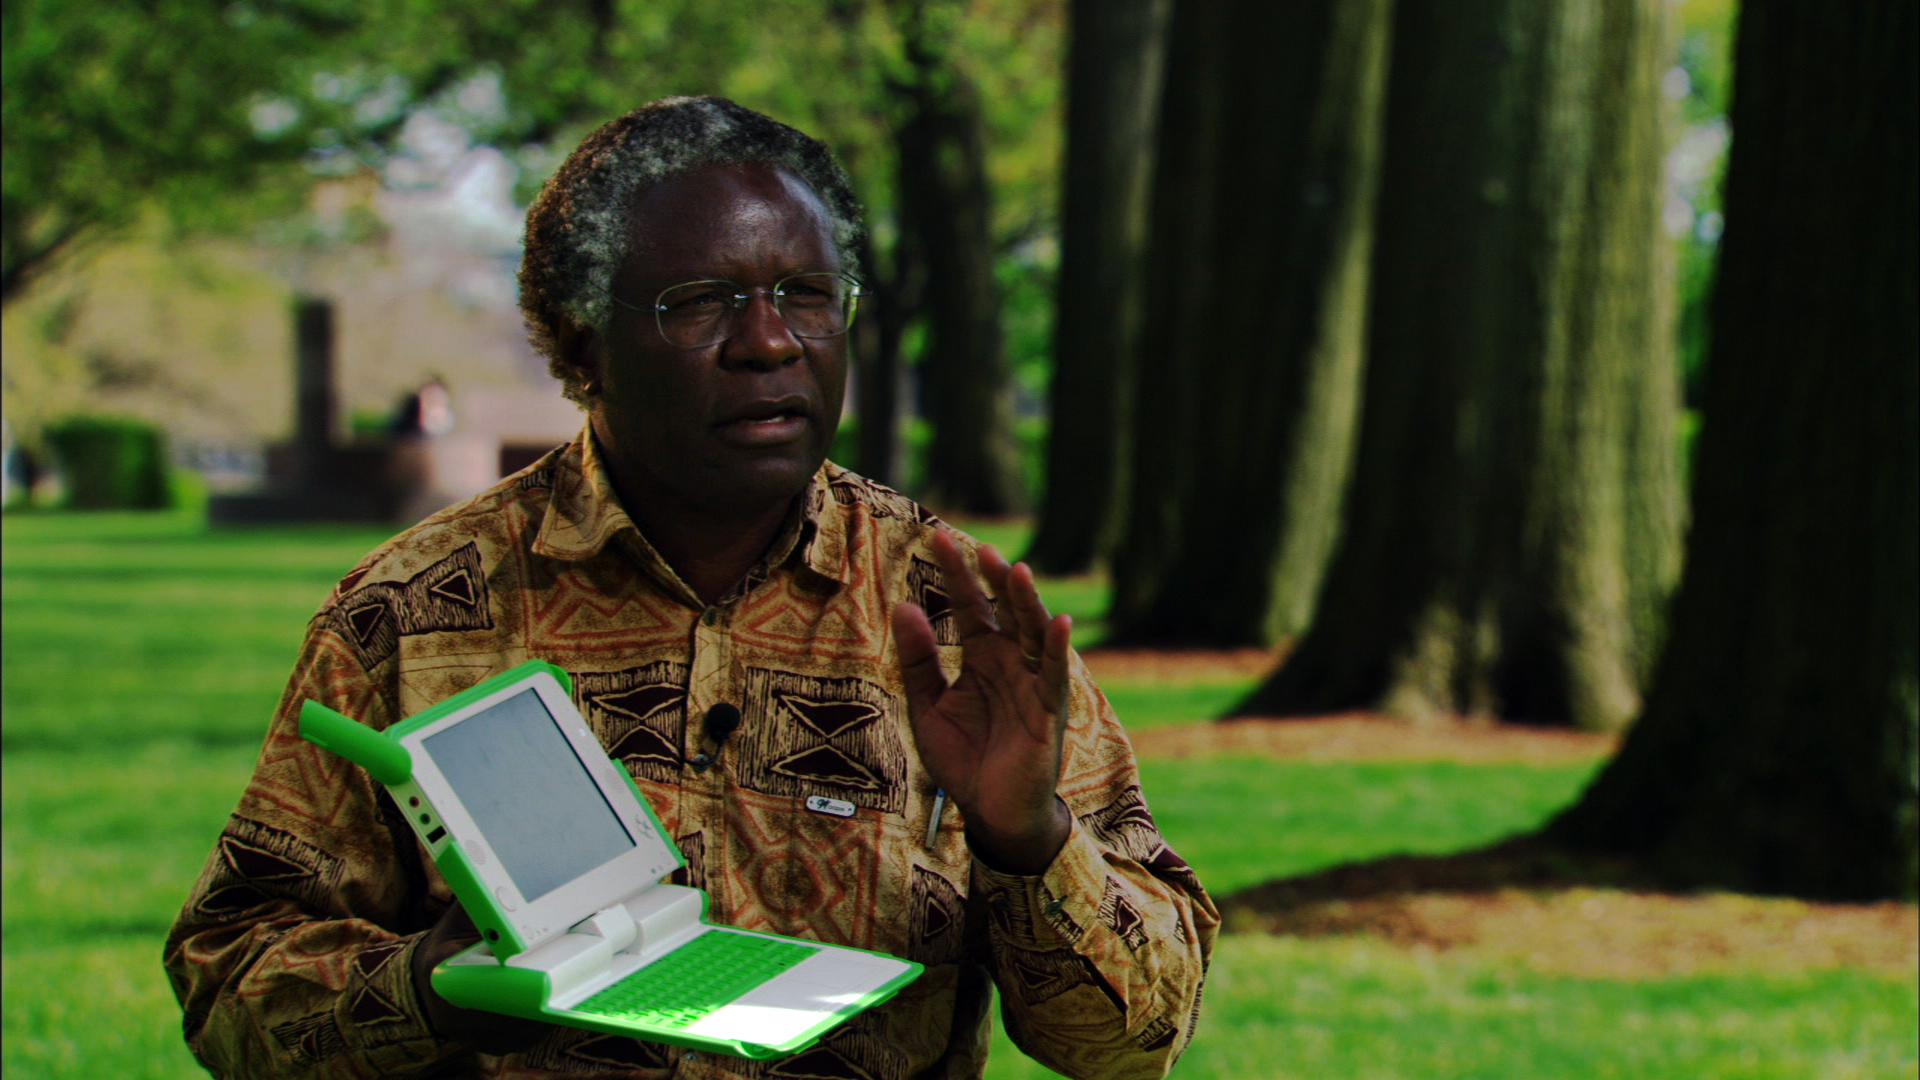 Internationally recognised authority in the application of science and technology to  sustainable development  worldwide. He was named one of the most influential 100 Africans in 2012, 2013 and 2014 by the    New African   magazine.     Professor of the Practice of International Development and Faculty Chair of the   Innovation for Economic Development Executive Program ,   Harvard Kennedy School  .